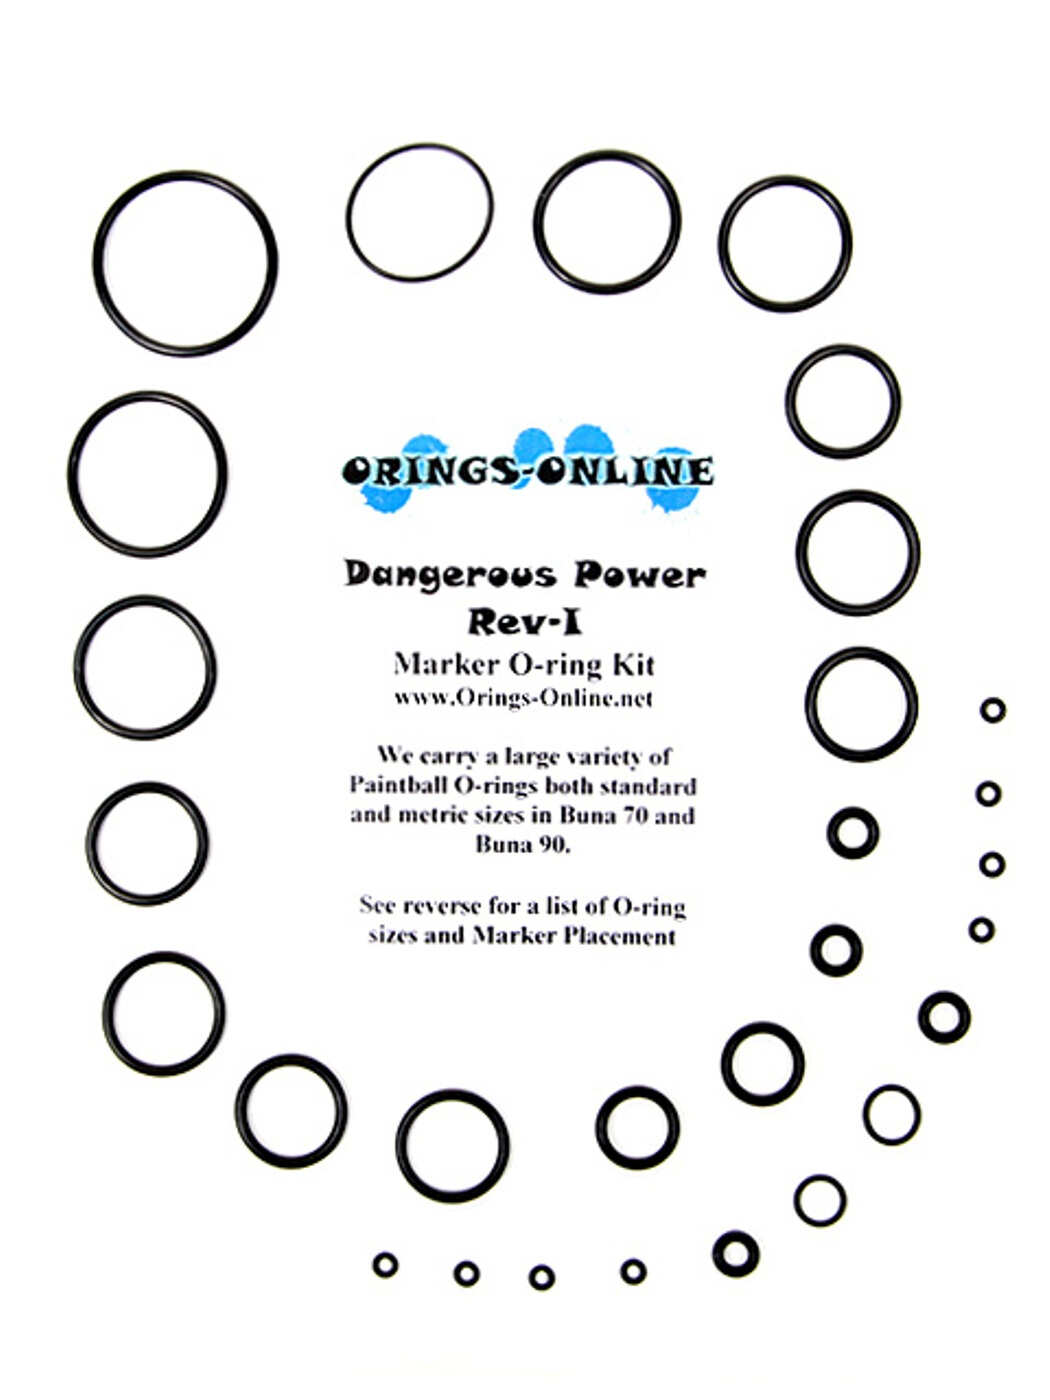 Dangerous Power Rev-I Marker O-ring Kit